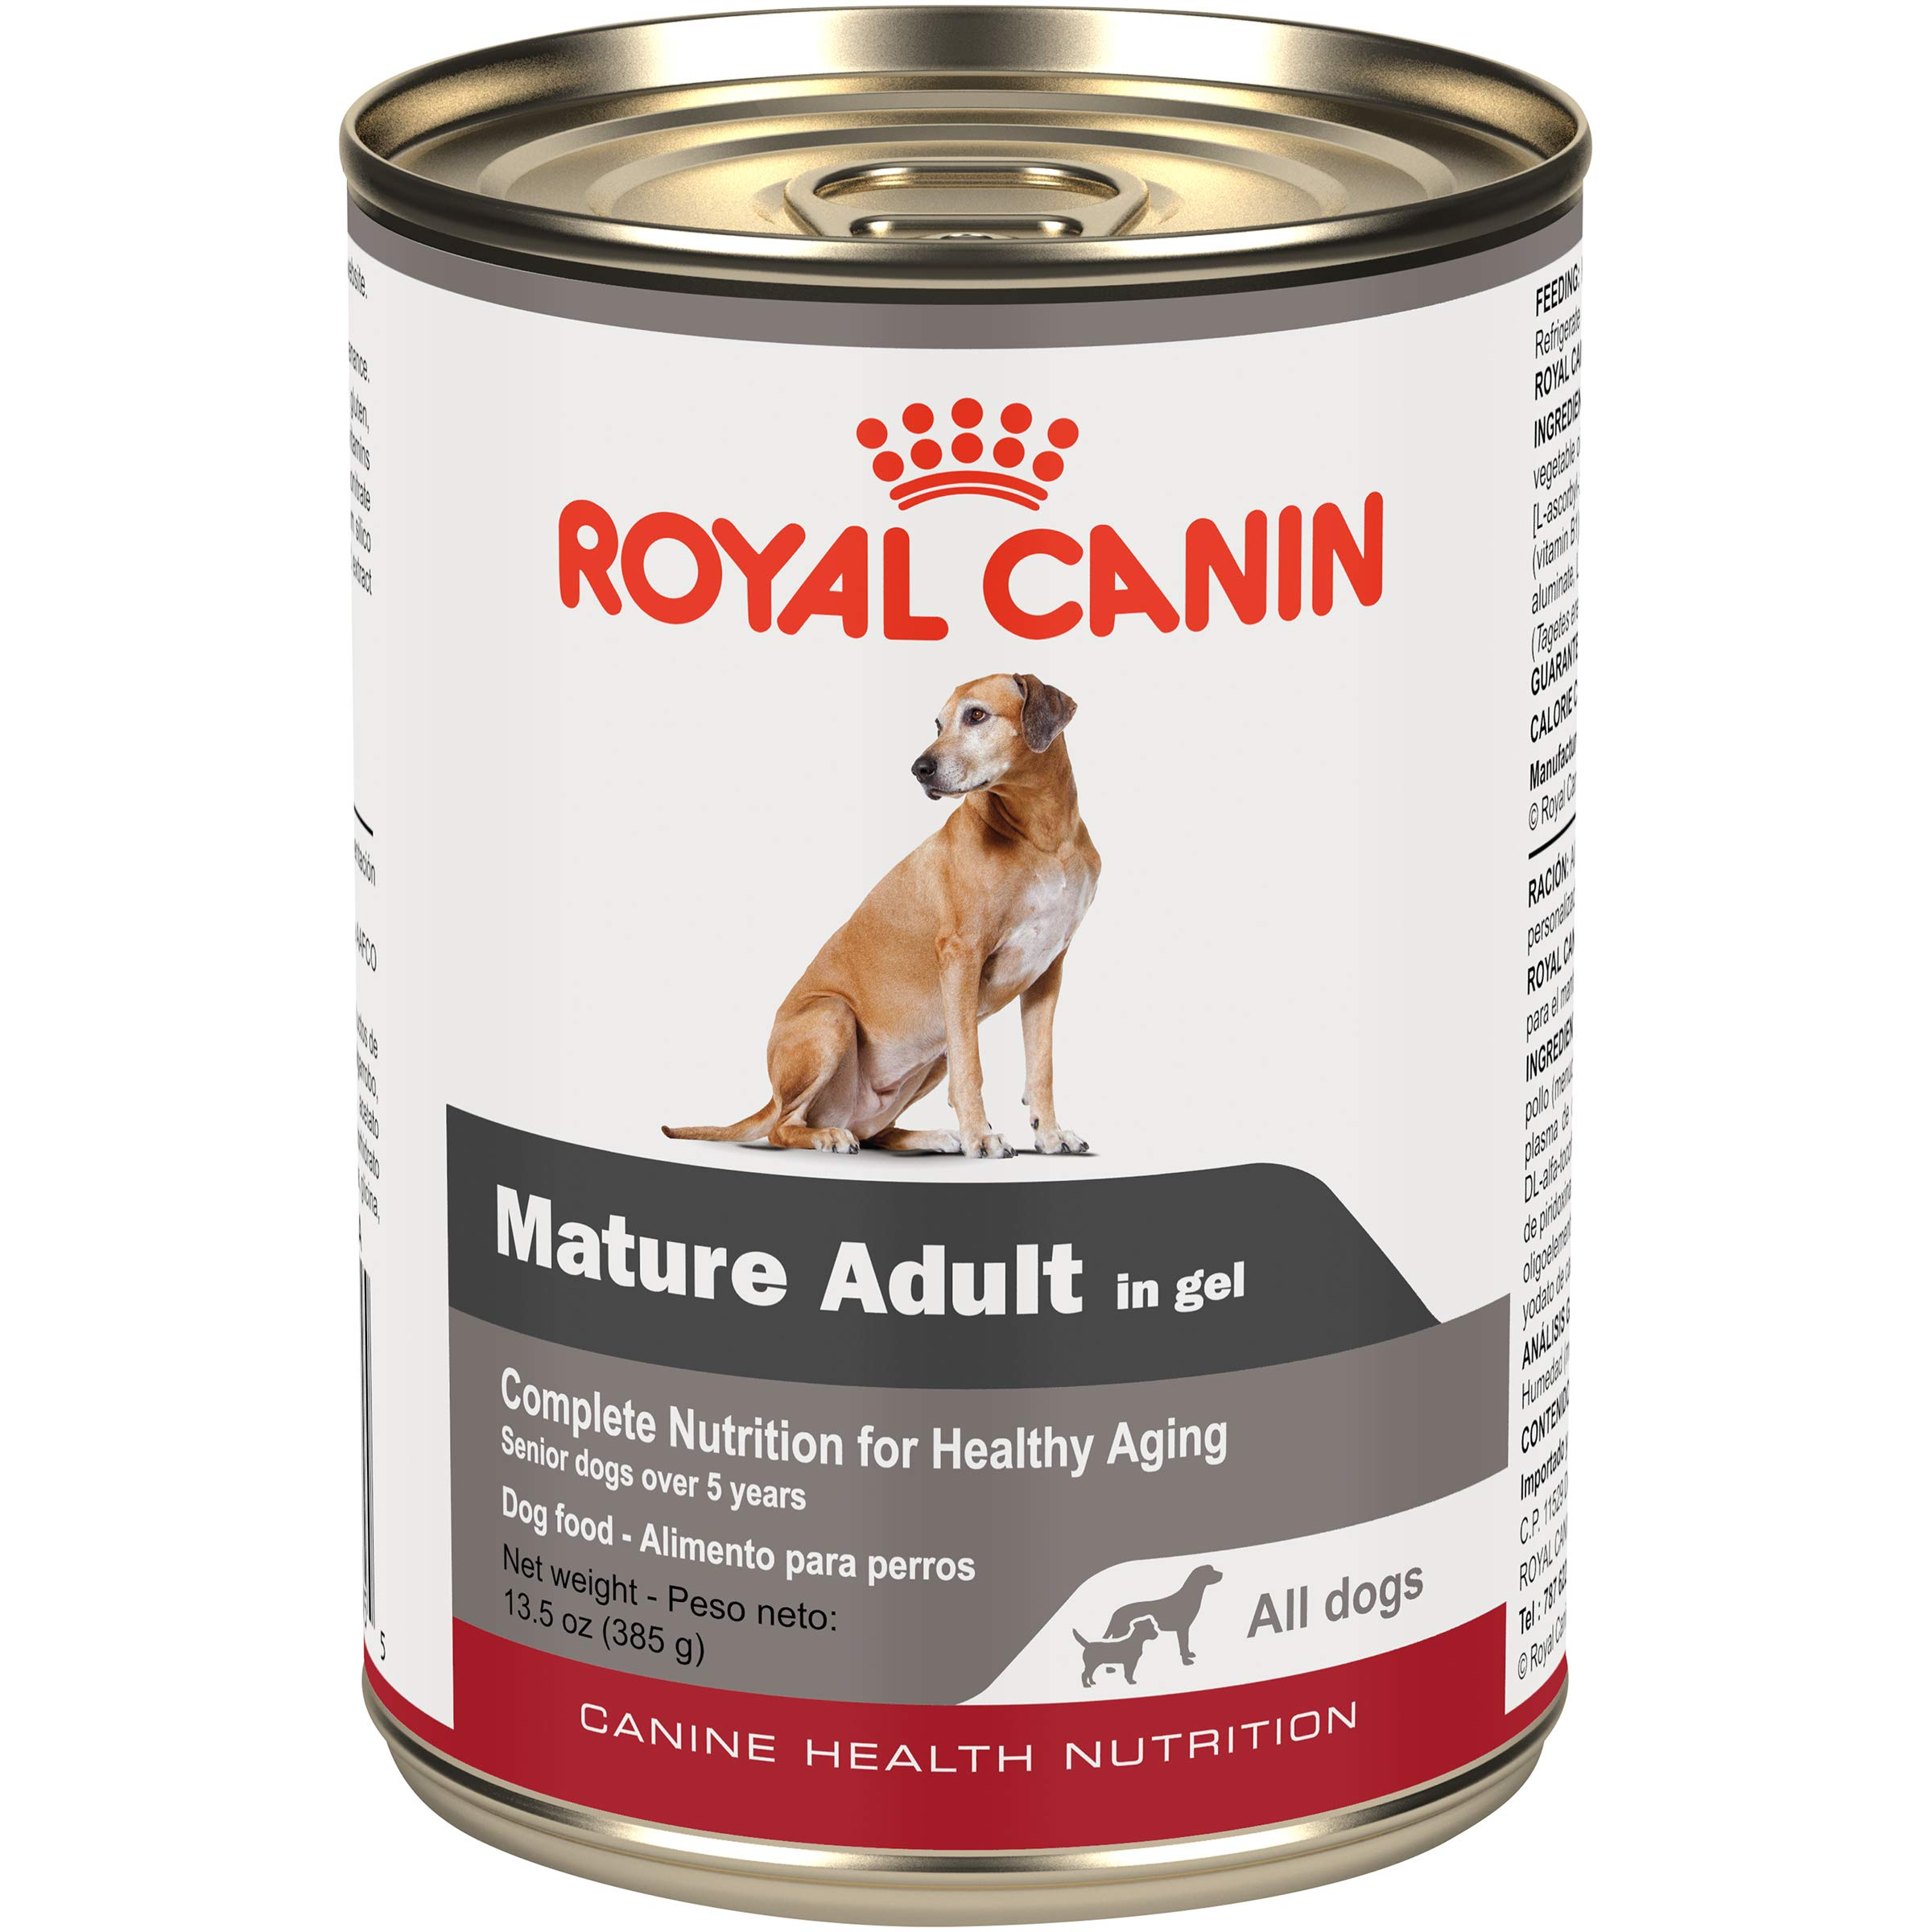 Royal Canin Canine Health Nutrition Mature Adult Canned Dog Food, 13.5 oz (Pack of 12) by Royal Canin